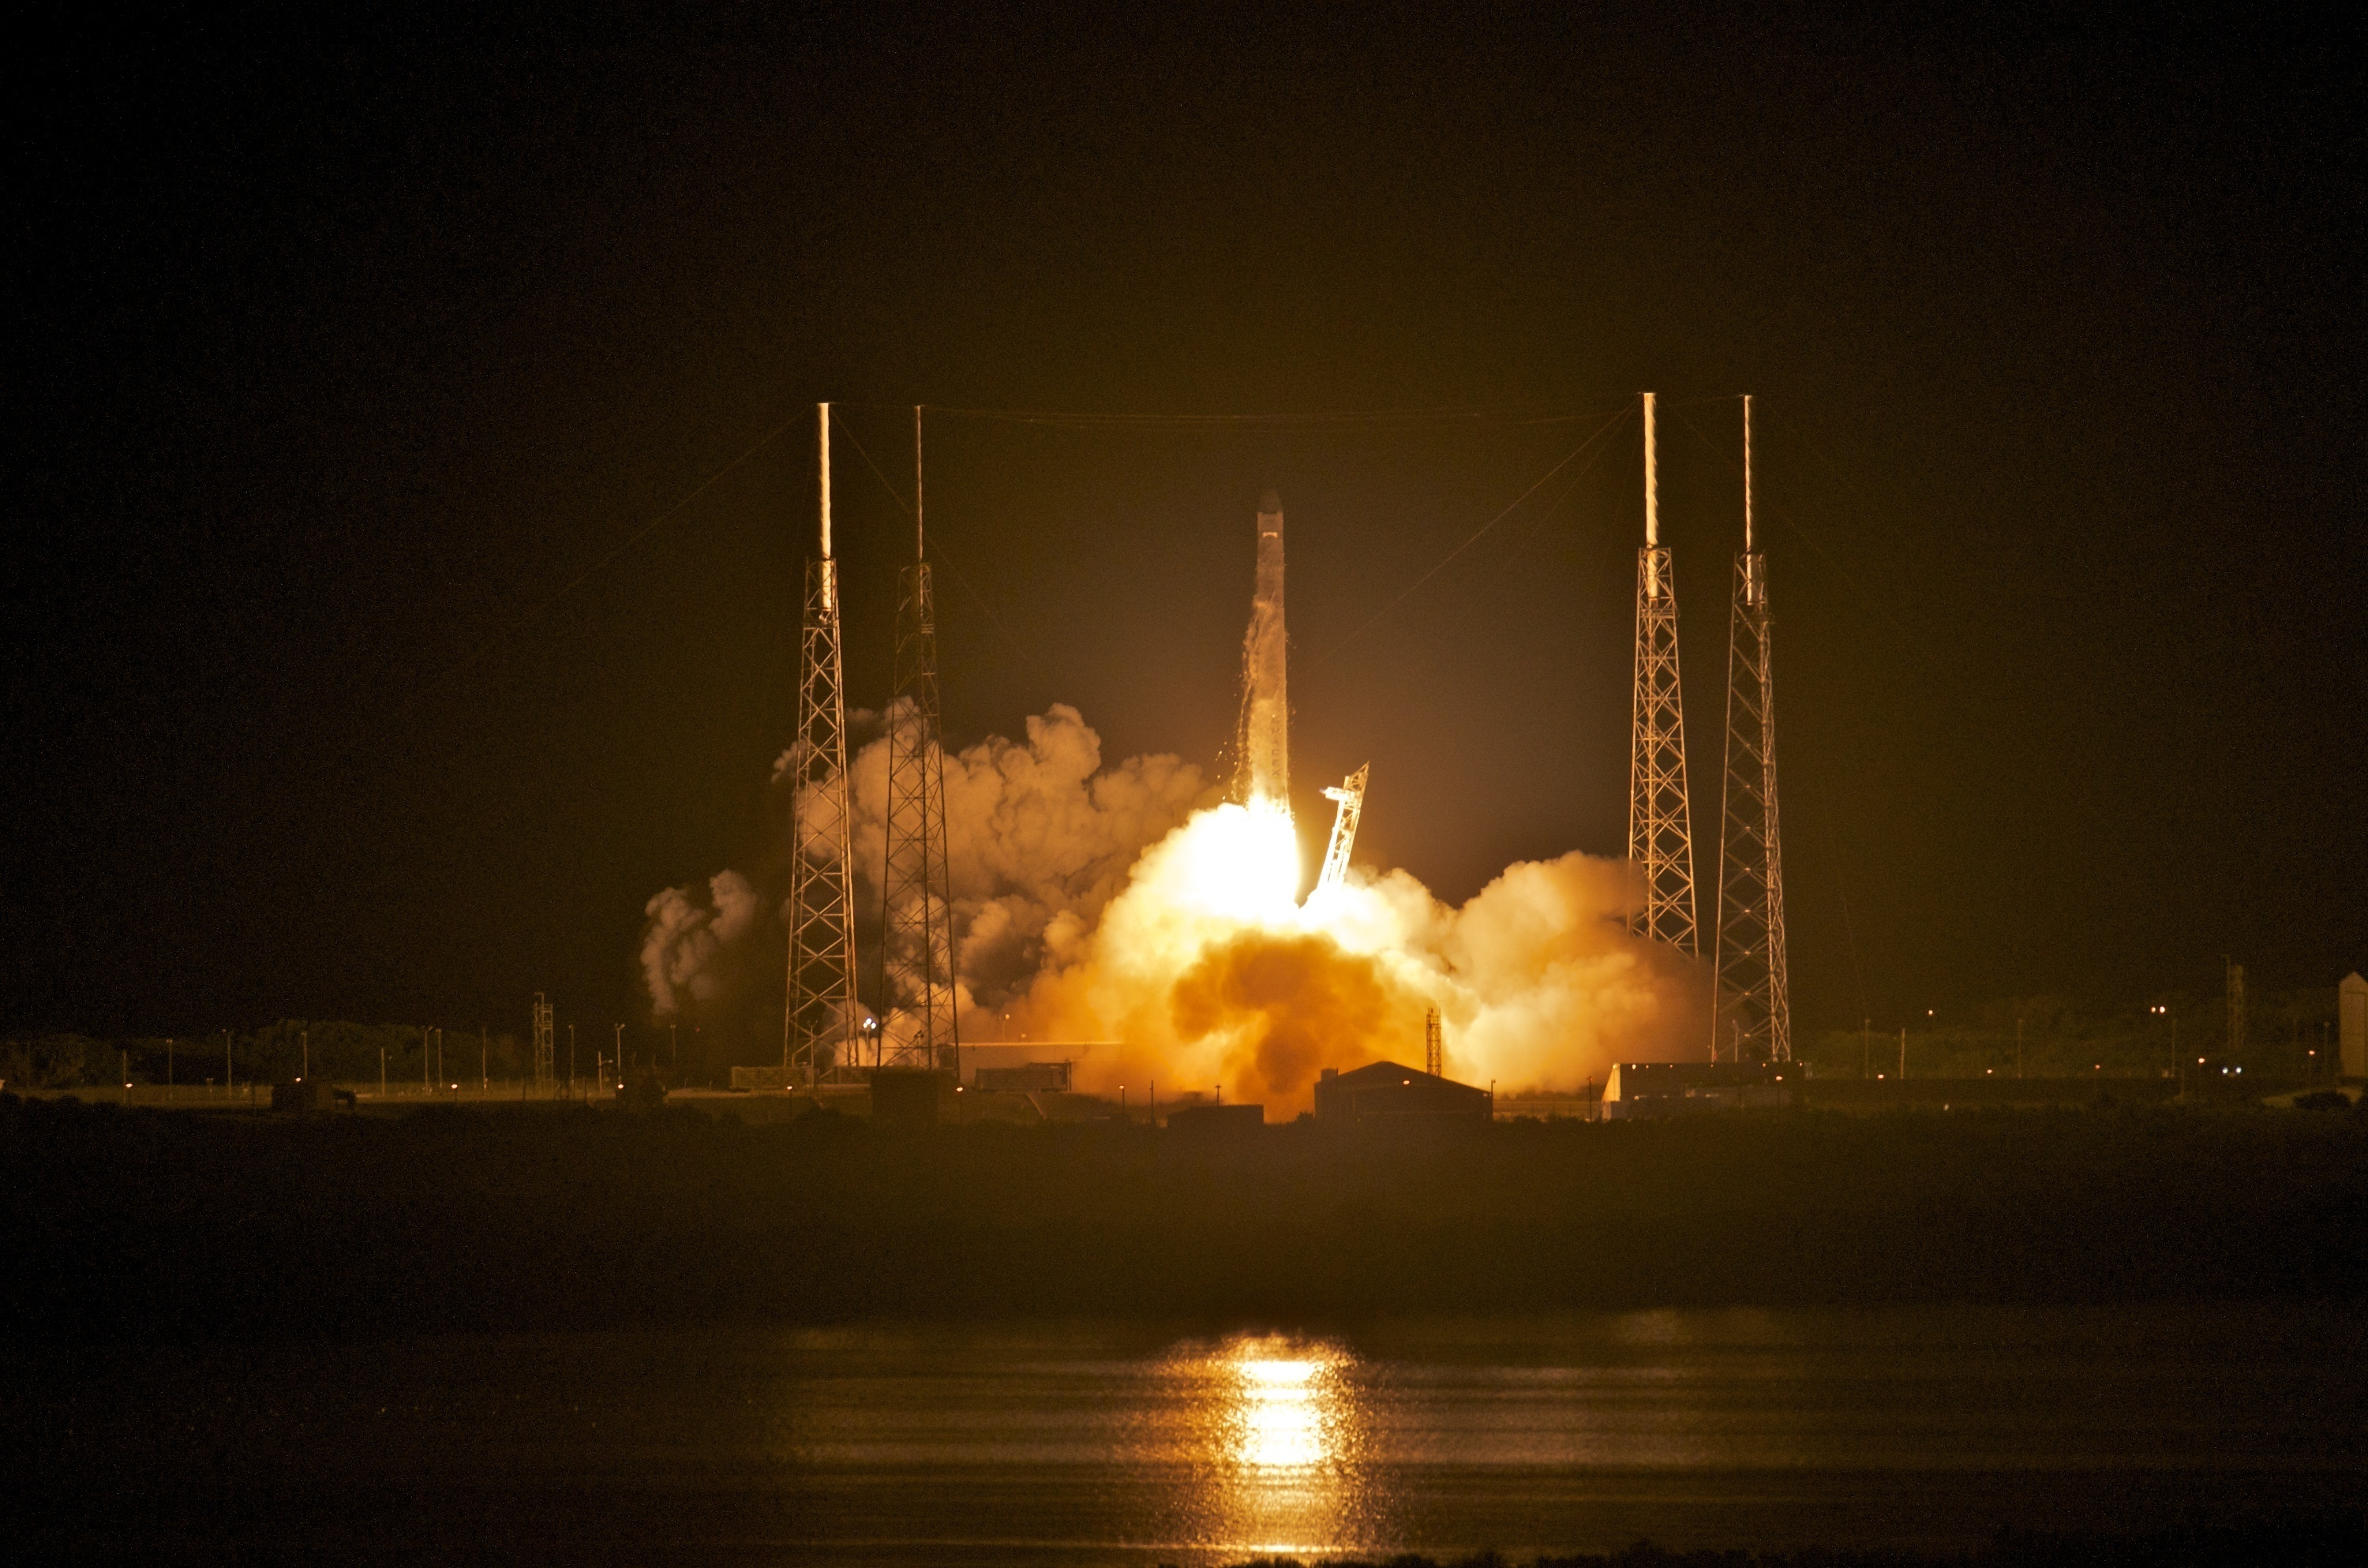 SpaceX makes its first launch to the International Space Station in 2012.